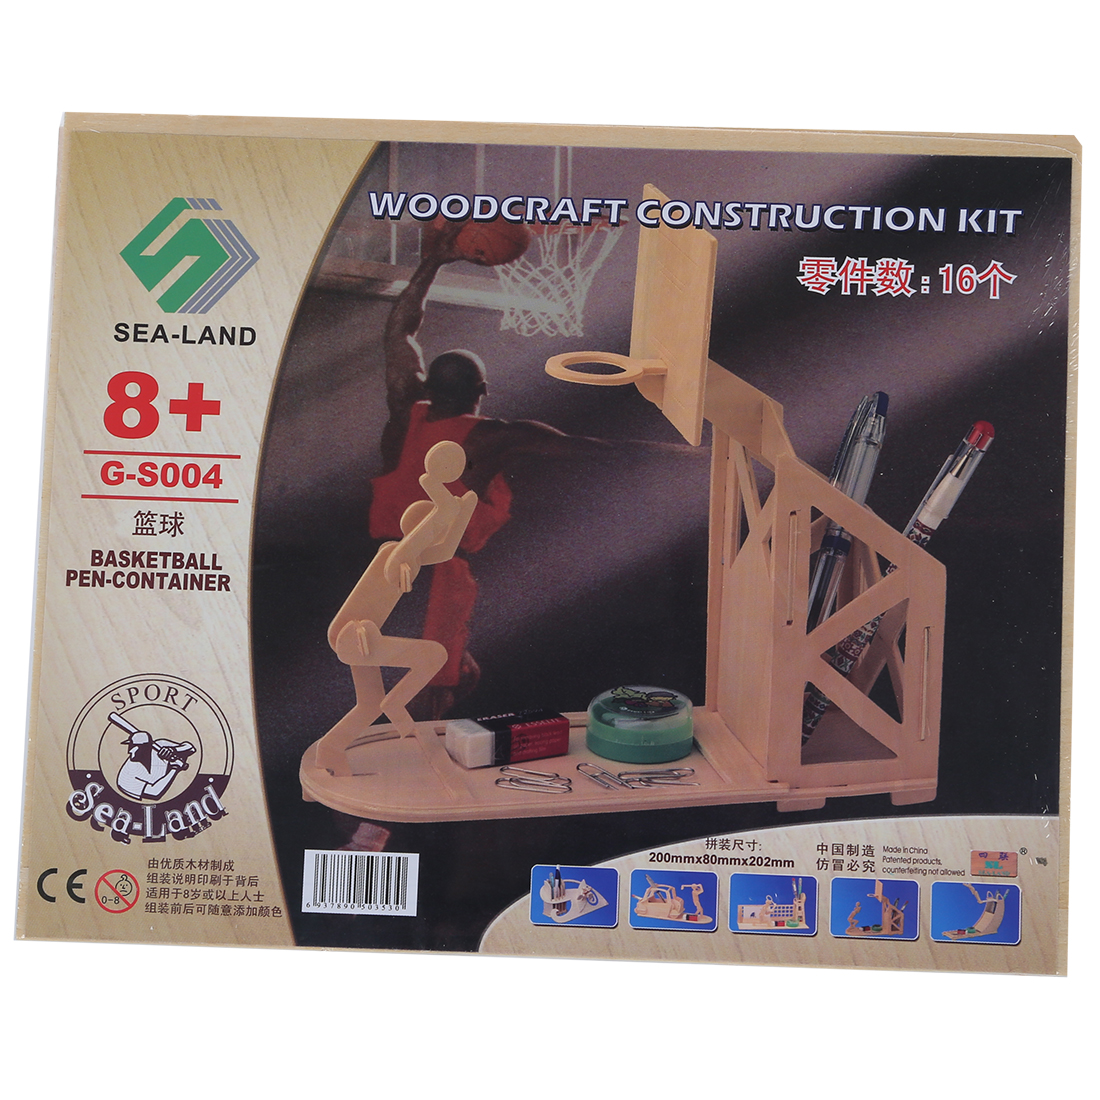 Home Obliging Wooden Basketball Pen Holder Woodcraft Construction Kit Assembling Puzzle Toy 100% Guarantee